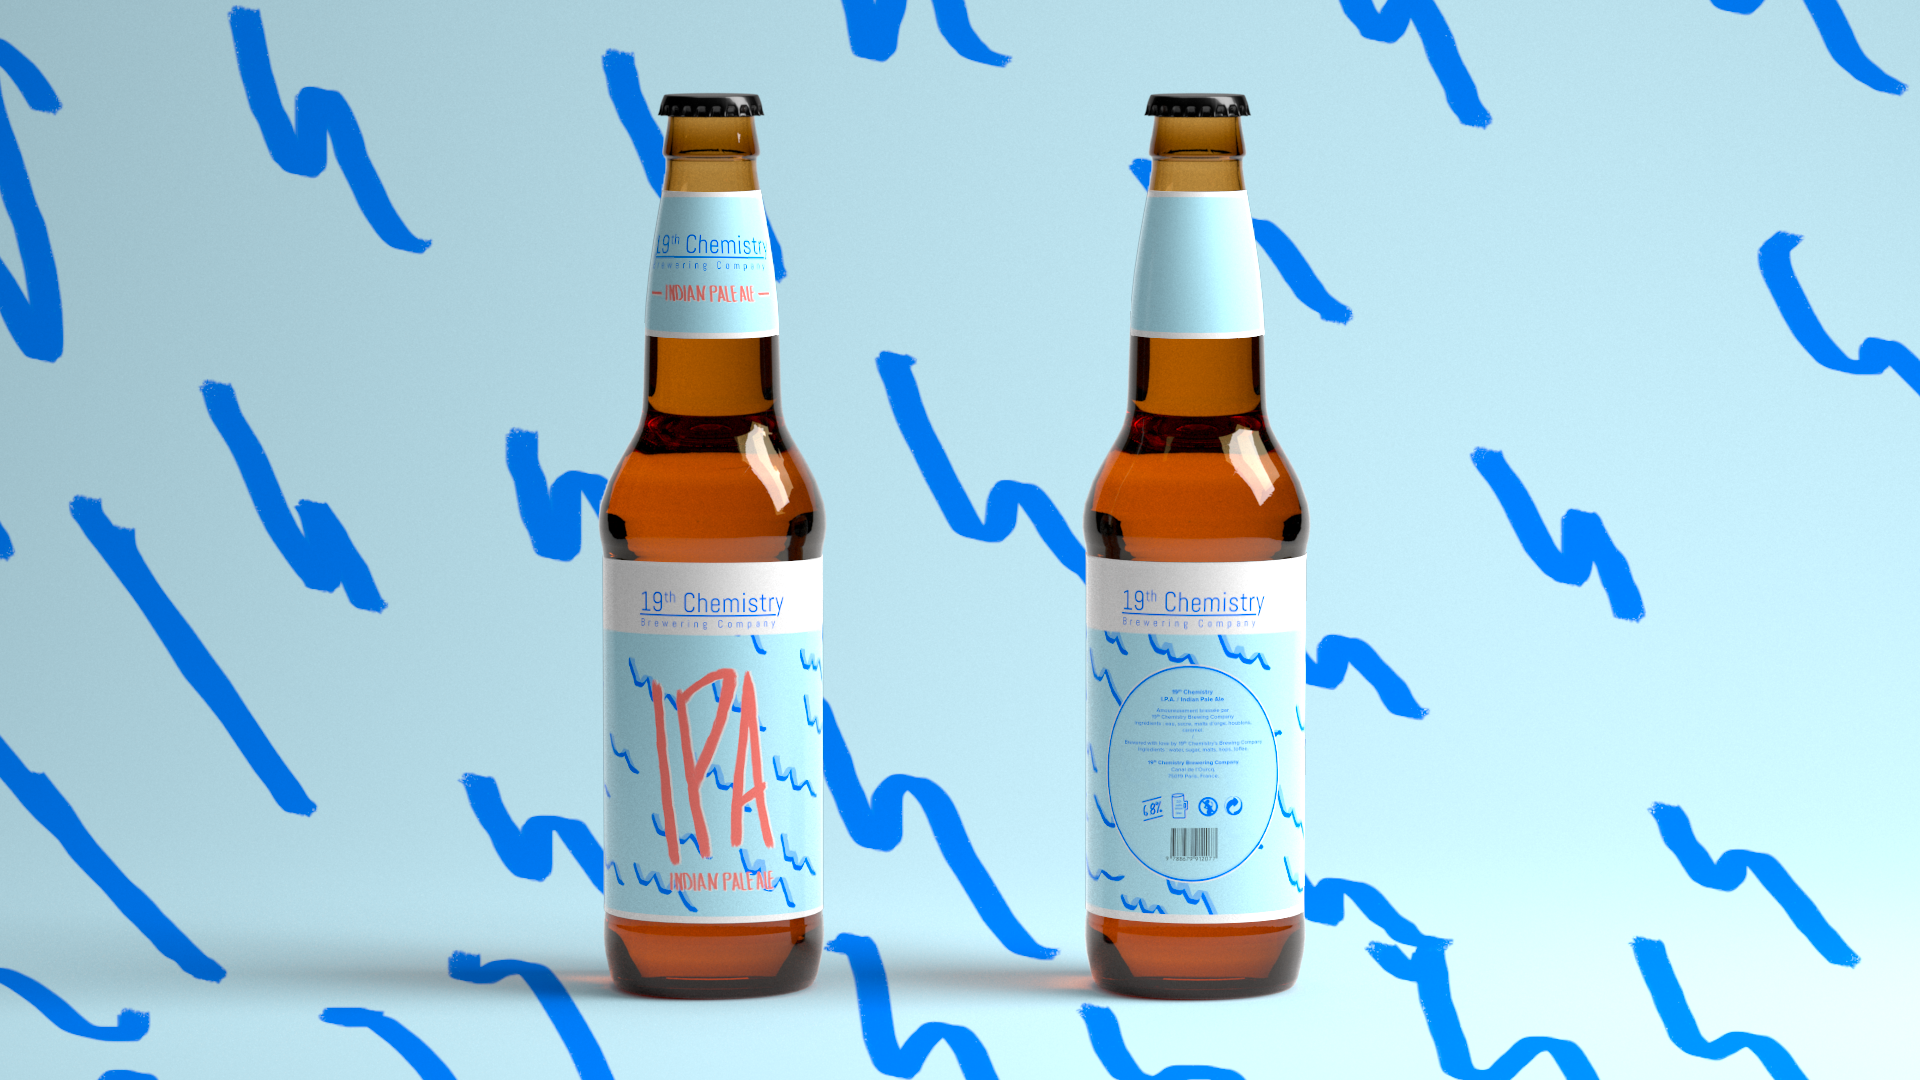 CRW_WI-BreweryProject_IPA-2.png